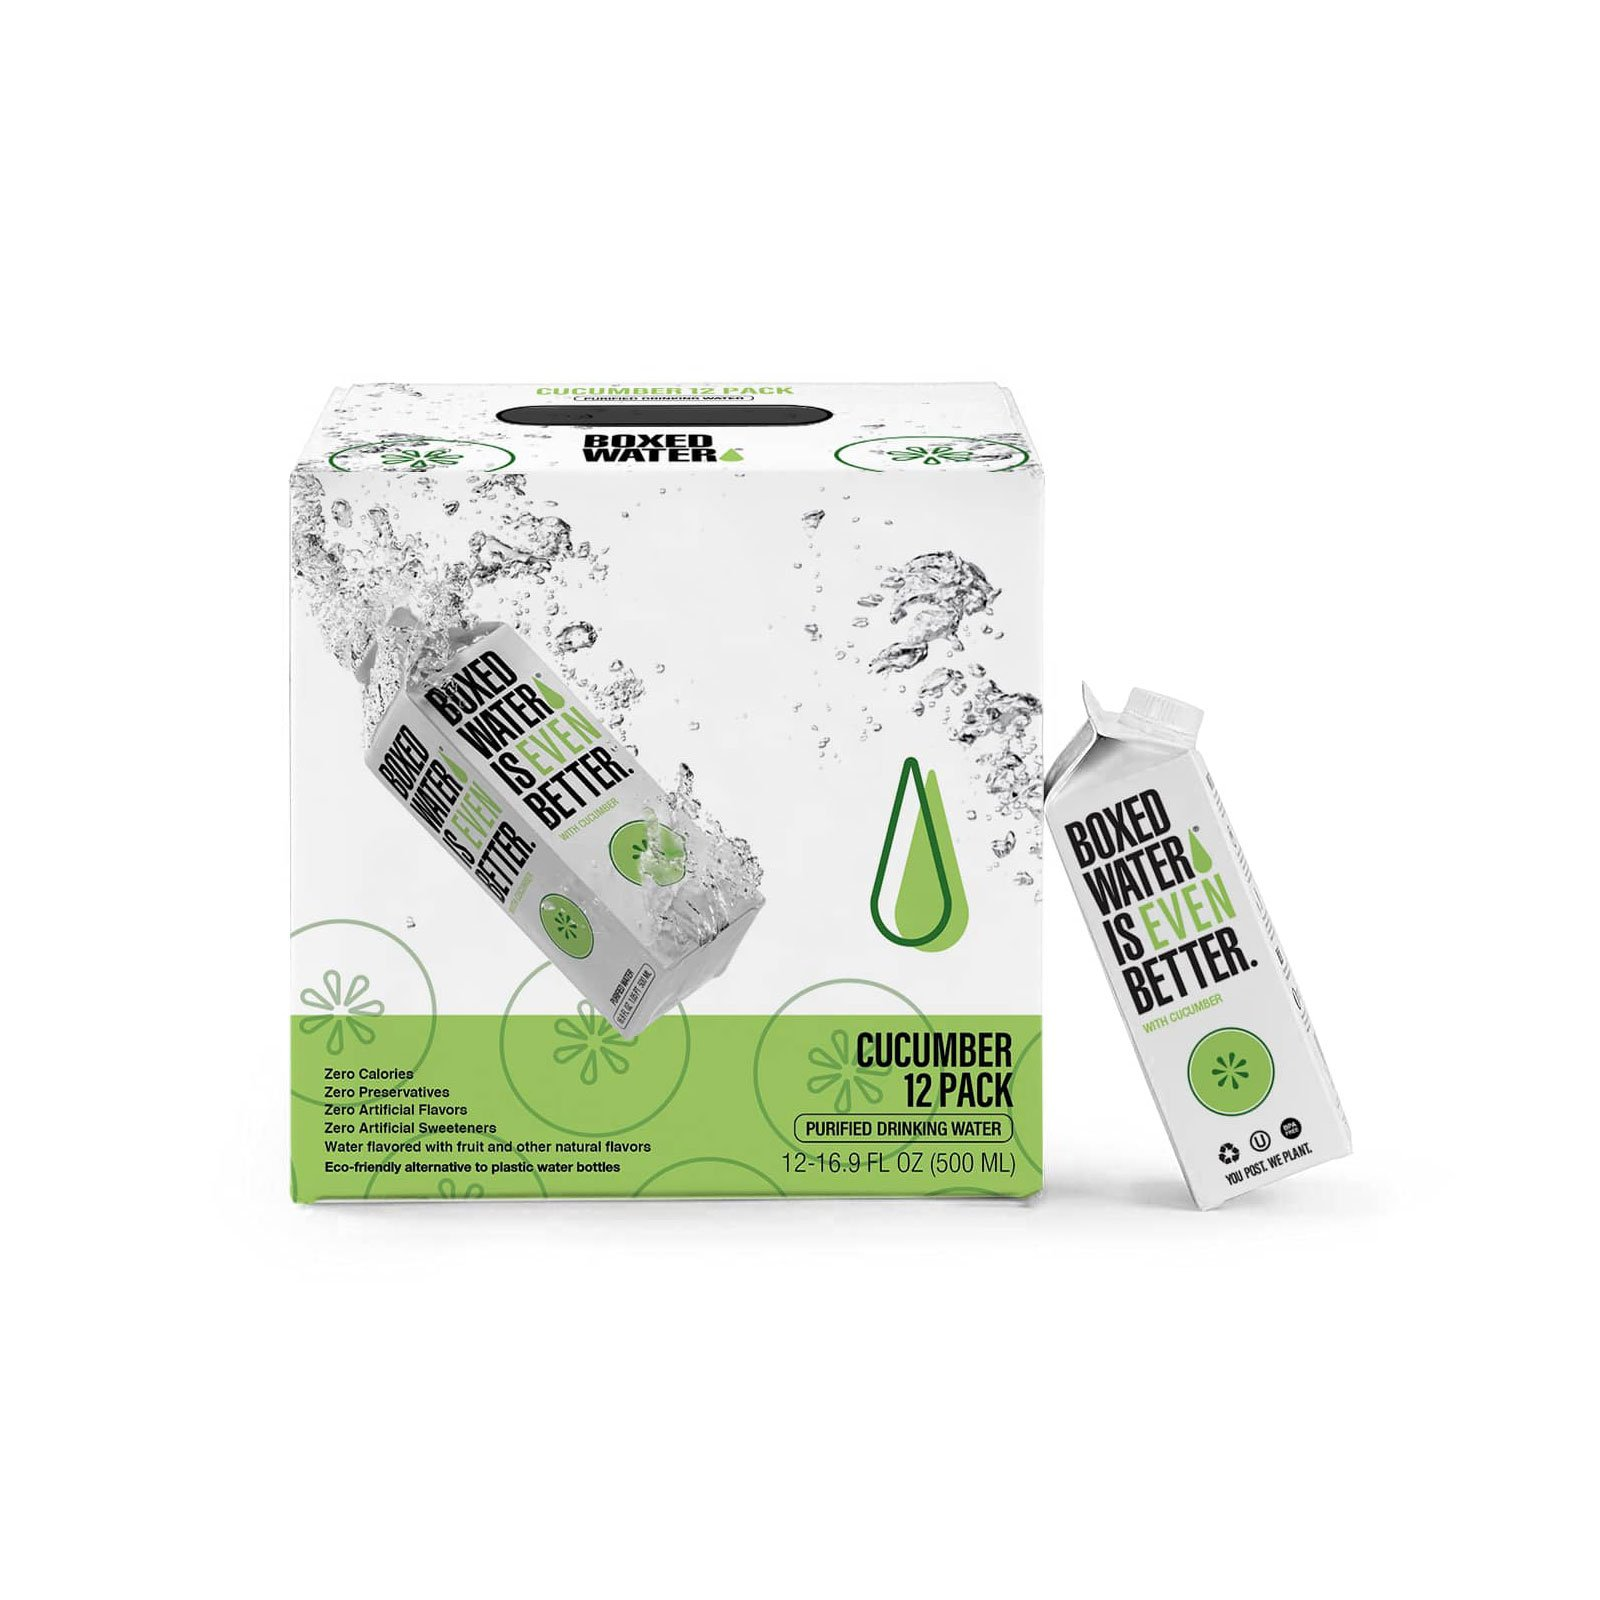 Cucumber Boxed Water